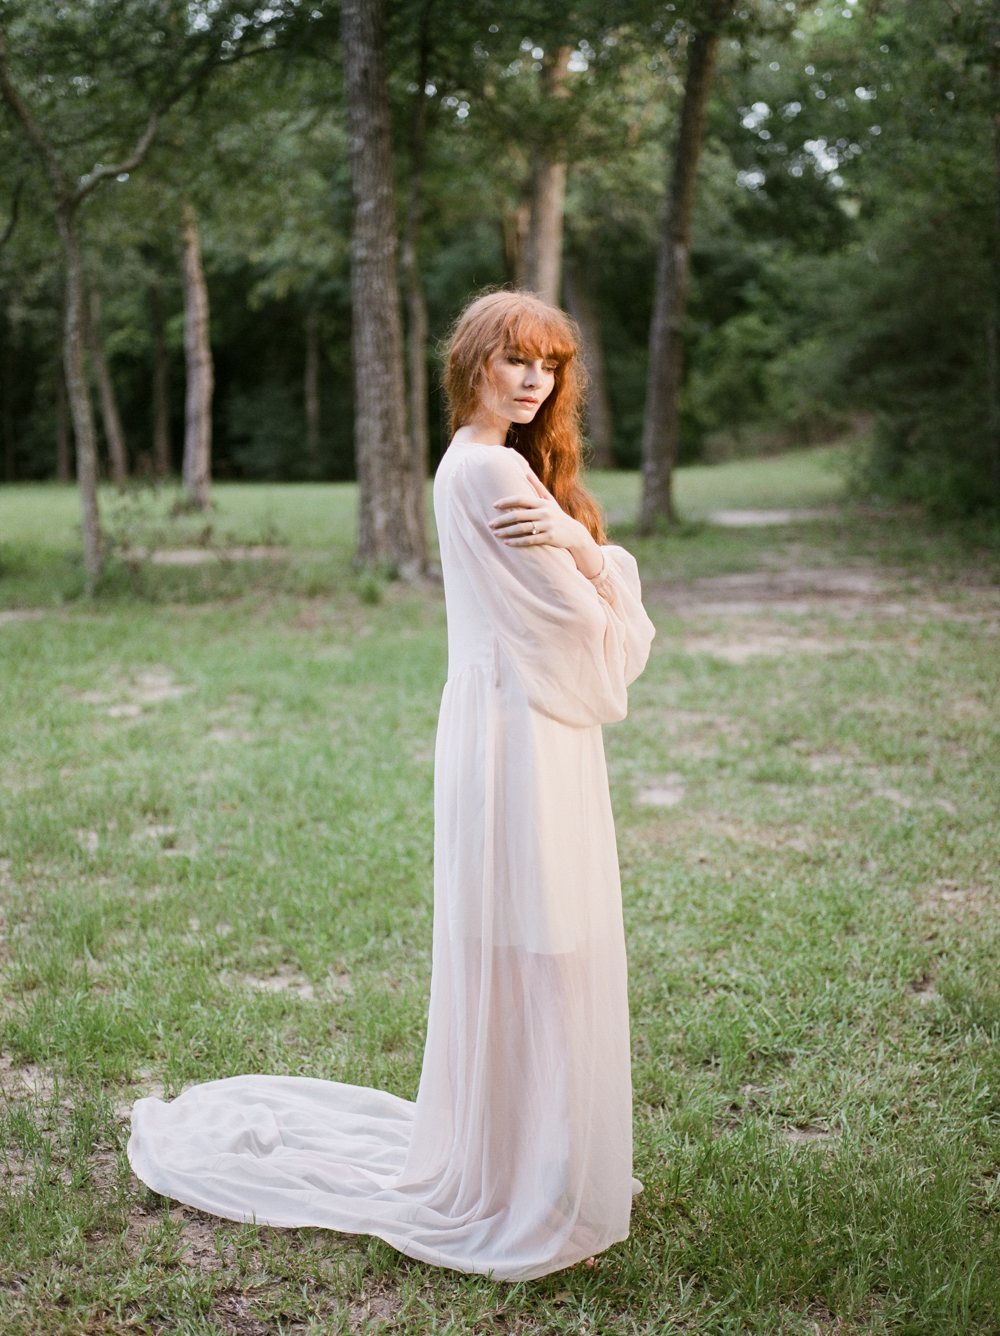 christine-gosch-summer-boudoir-session-blush-robe-pink-fond-of-silk-fujifilm-pentax645n-canonAE1-the-find-lab-texas-film-photographer-houston-boudoir-photography-fine-art11.jpg